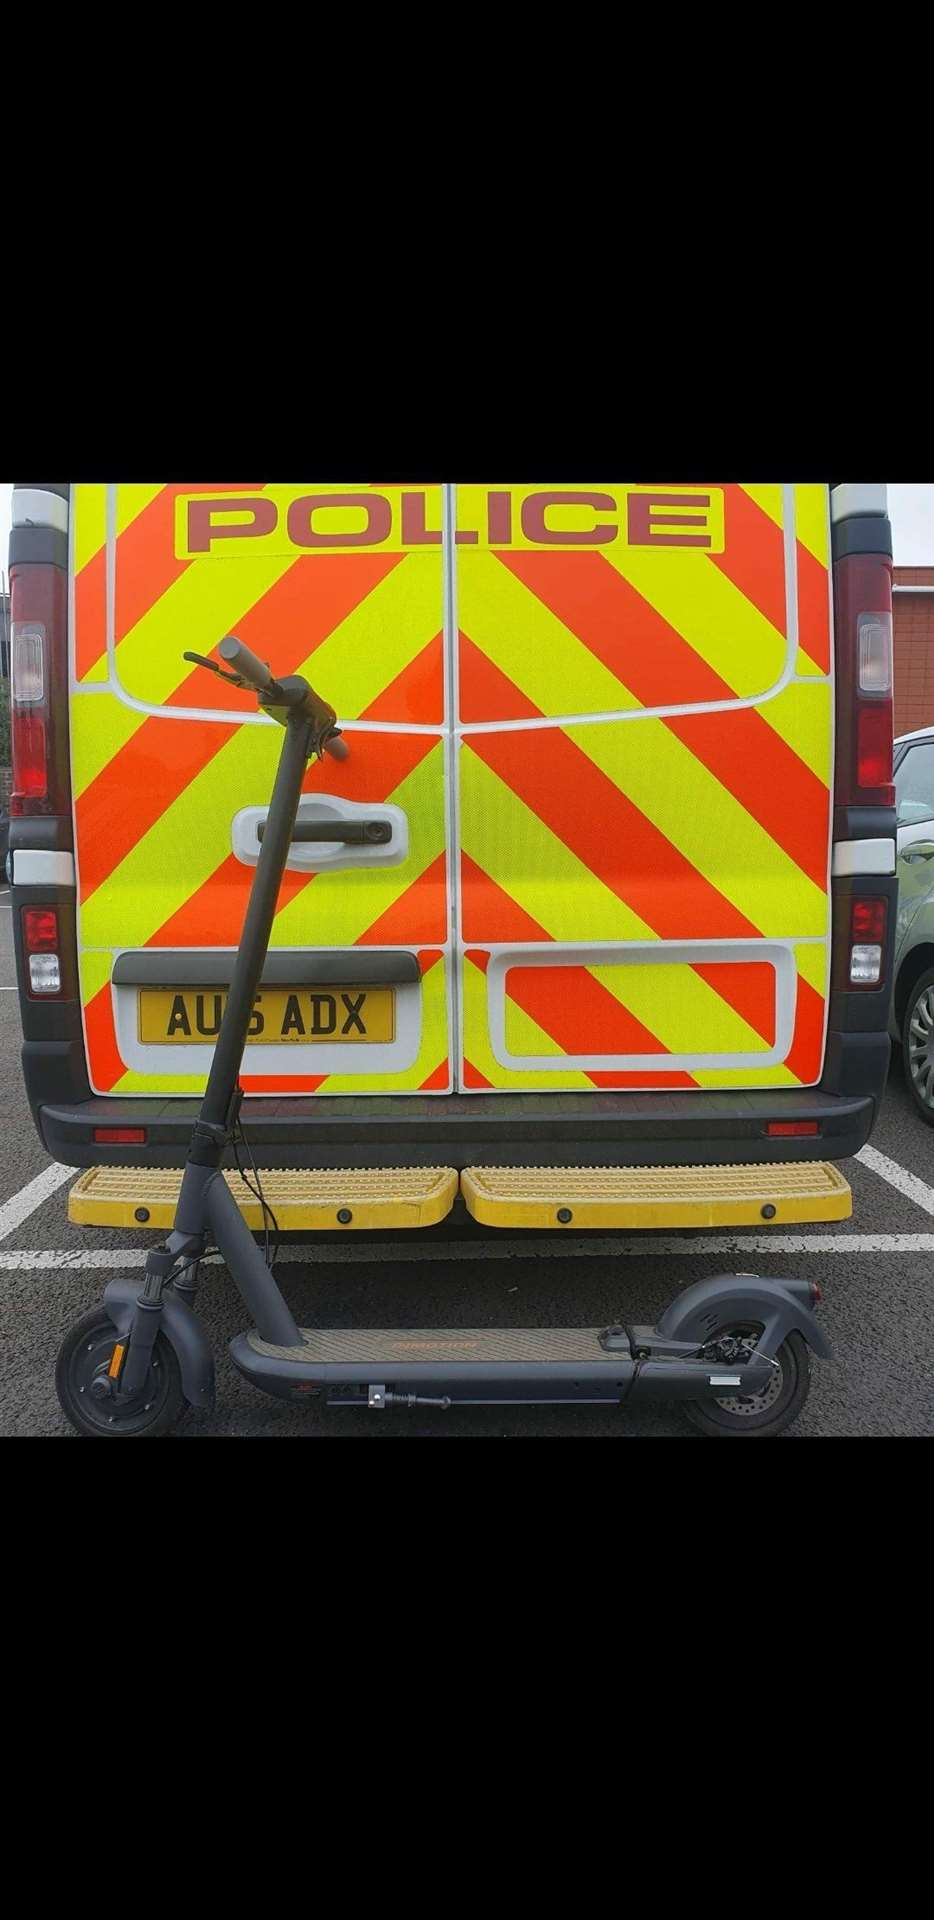 King's Lynn Police seize an E-Scooter worth £750 CREDIT King's Lynn Police Twitter (49206003)